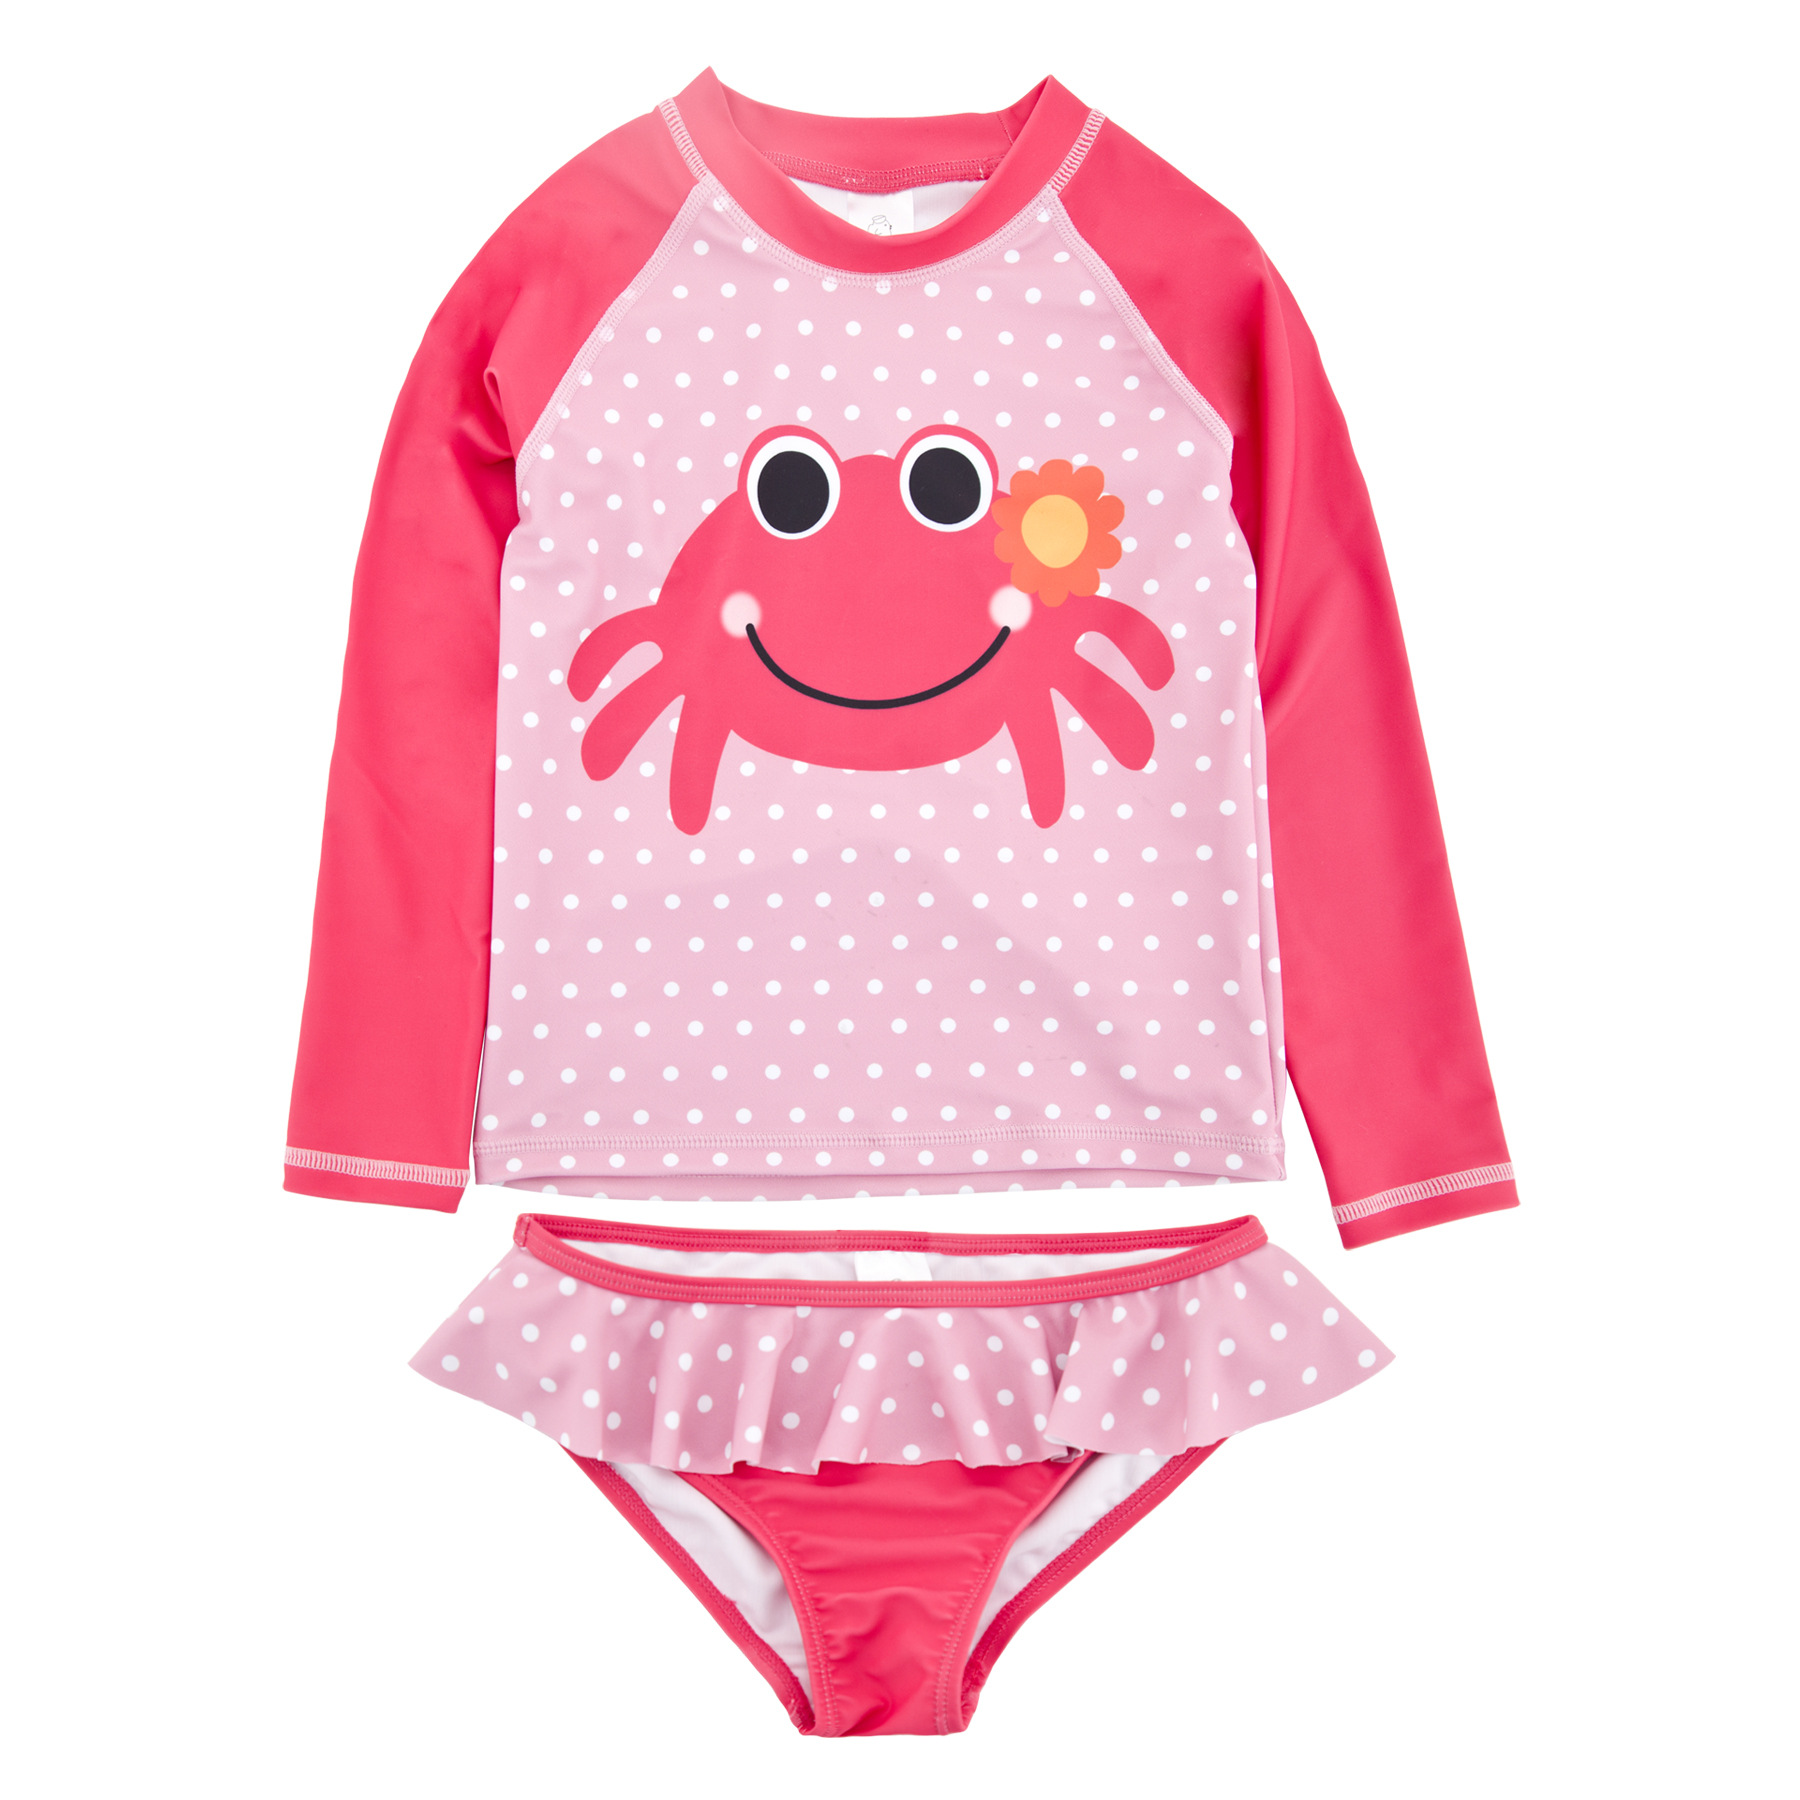 INS New Style Manufacturers Direct Selling Infants Bathing Suit Children Europe And America Two-piece Swimsuits Wholesale Cross